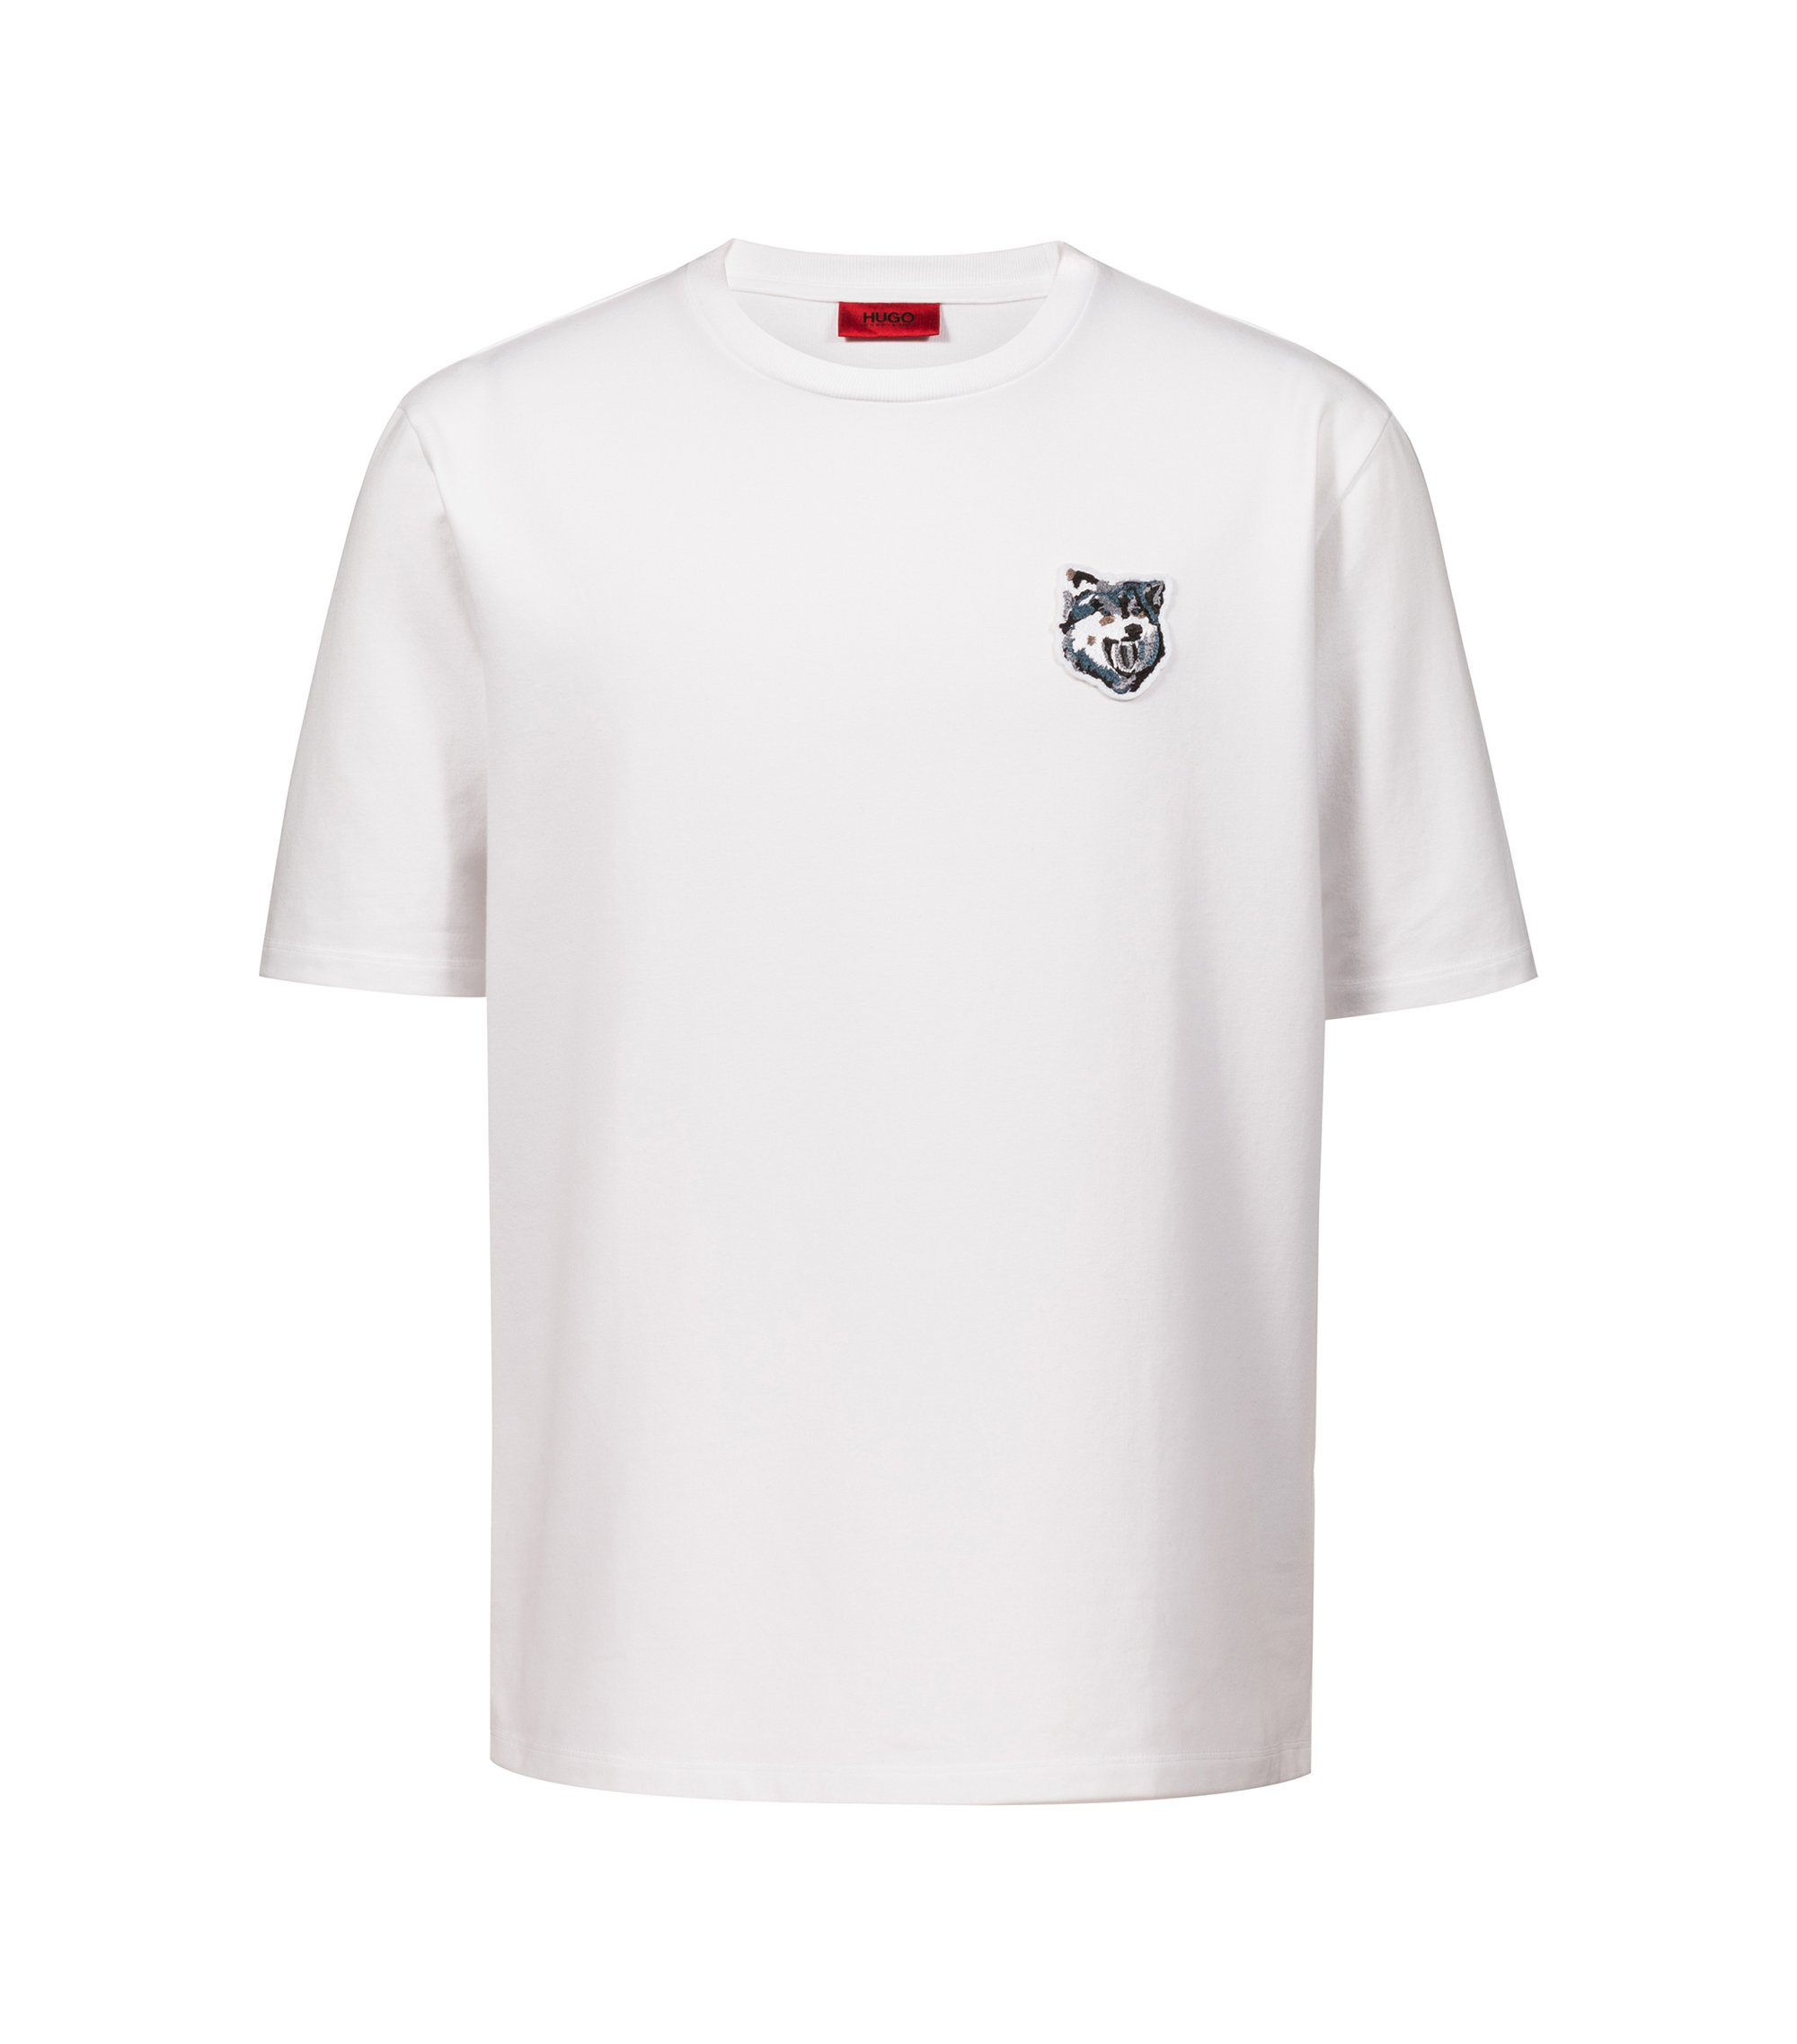 Oversized-fit T-shirt in French terry with wolf badge, White